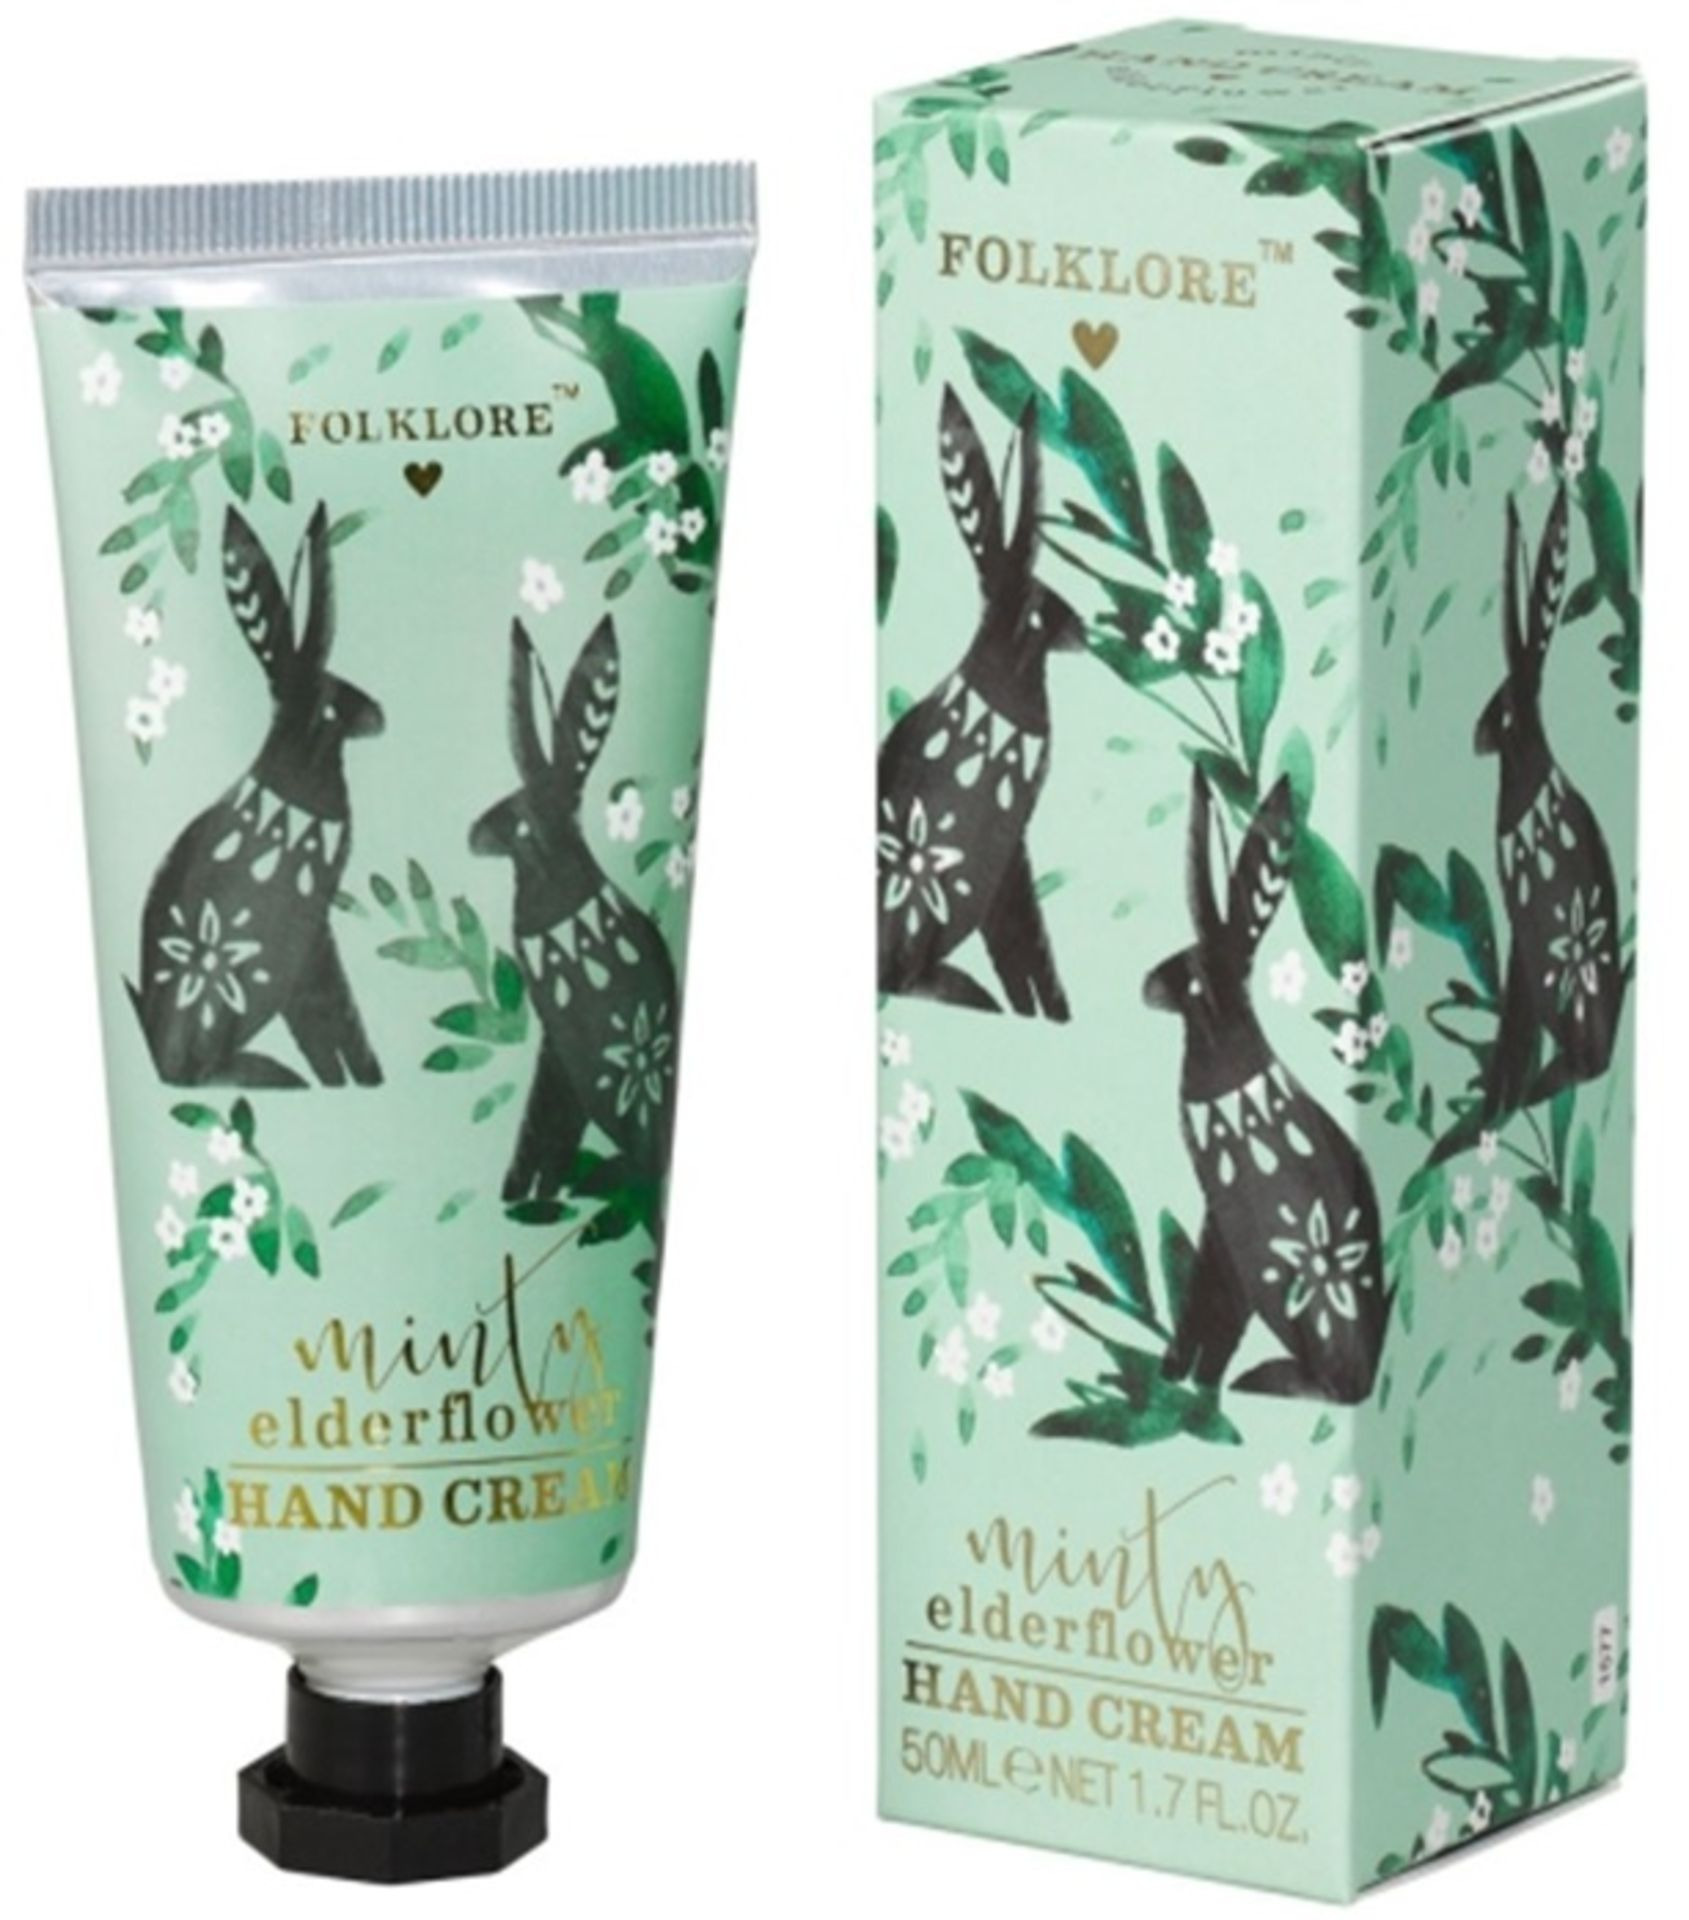 100 x Various Folklore Handcream   50ml   Total RRP £899 - Image 3 of 4